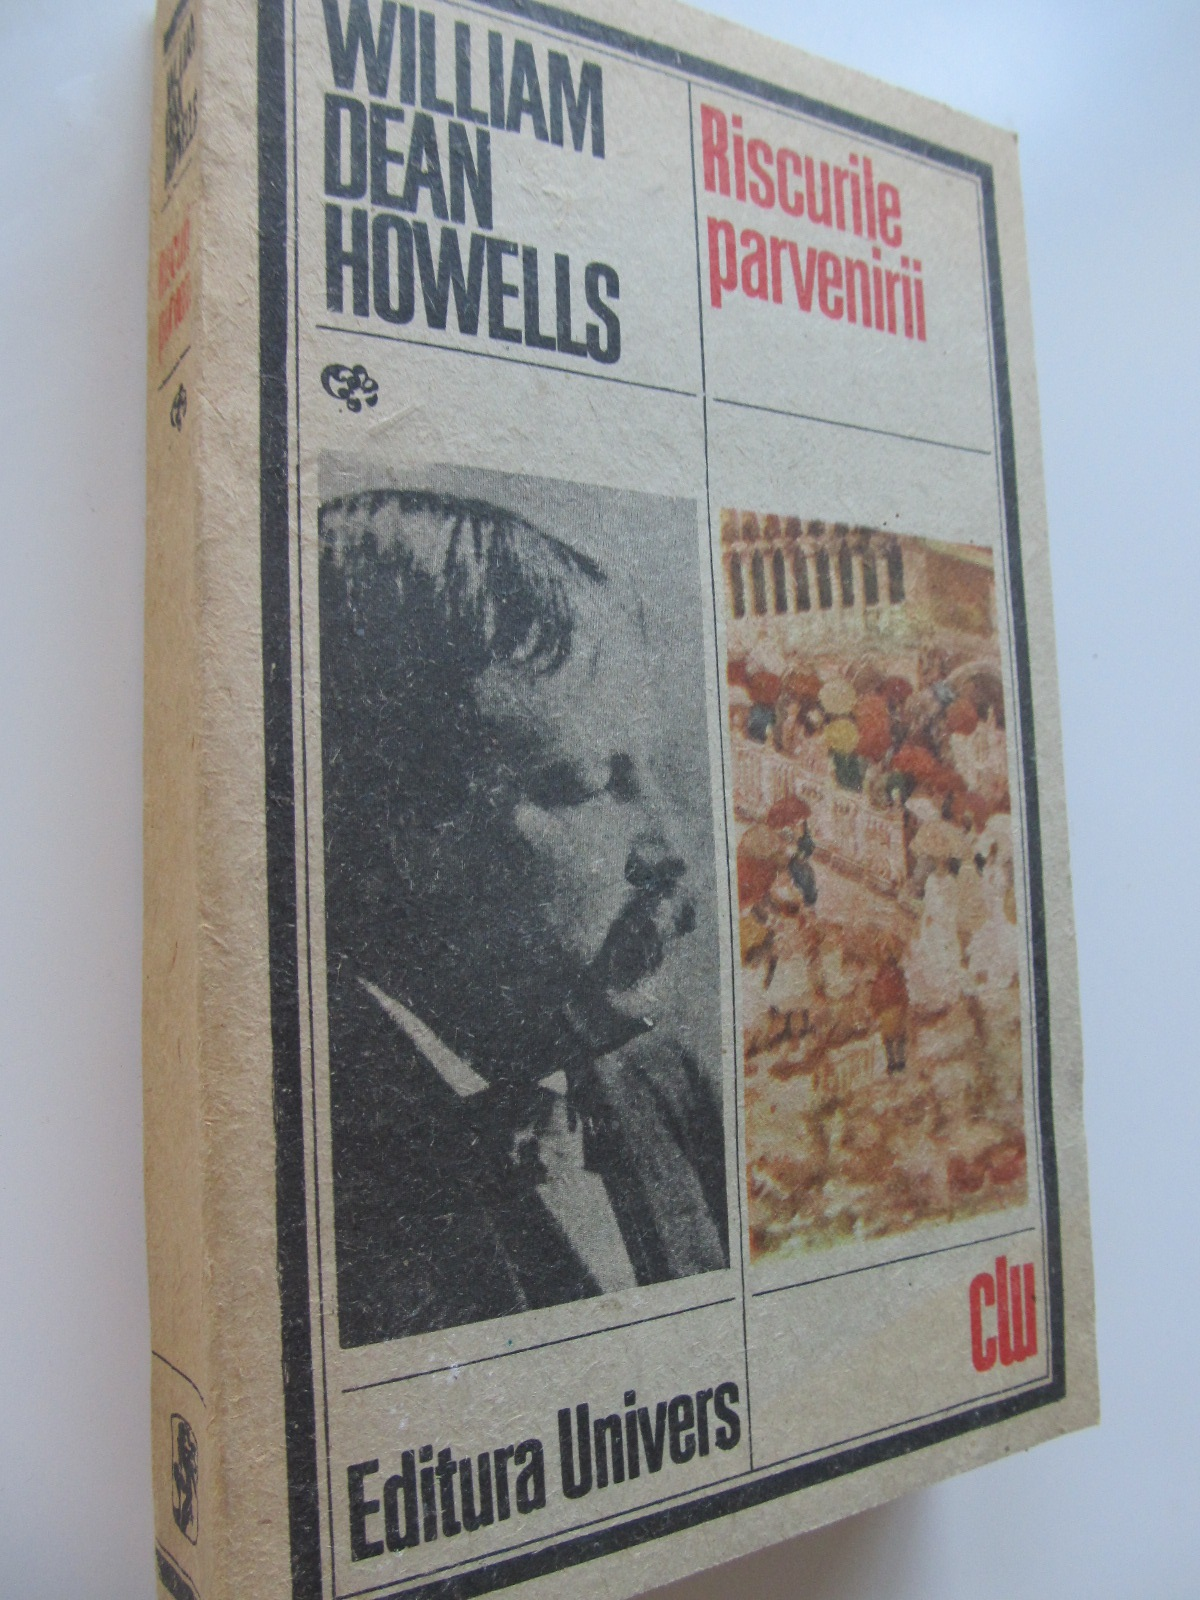 Carte Riscurile parvenirii - William Dean Howells